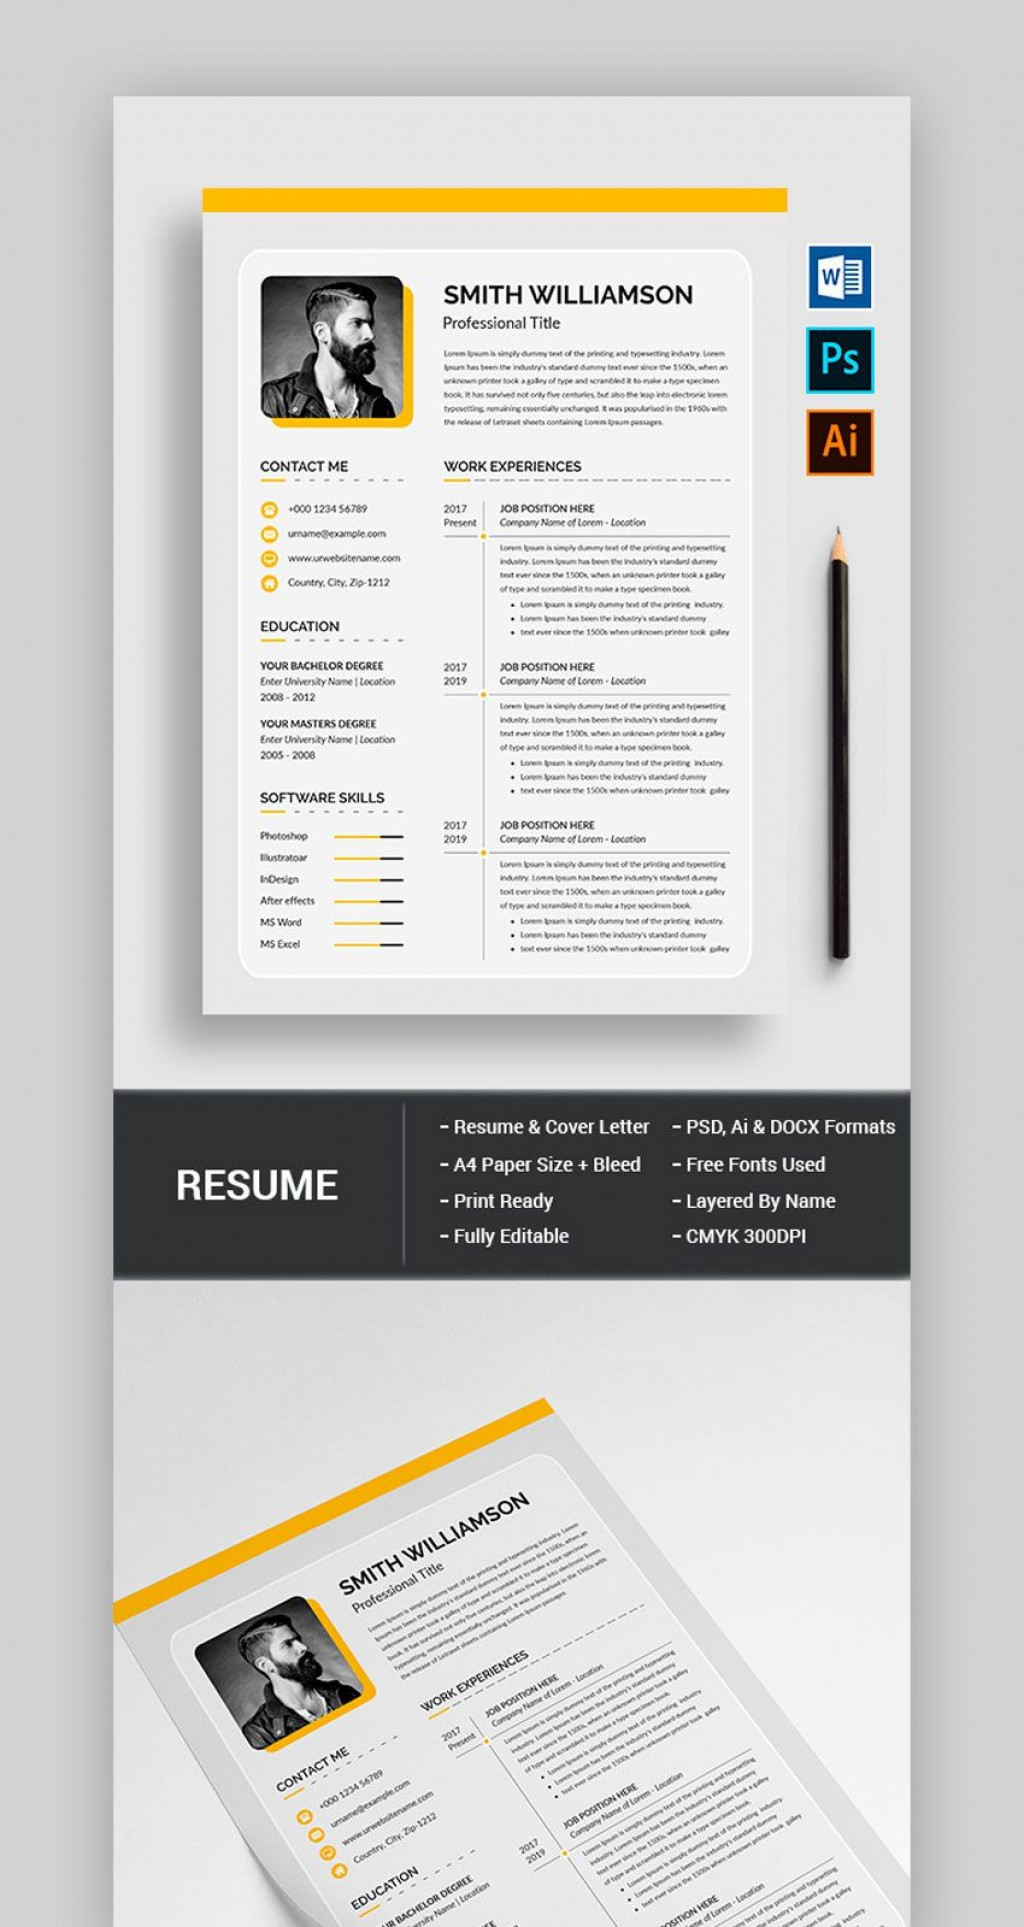 005 Archaicawful Photoshop Resume Template Free Psd Sample Large